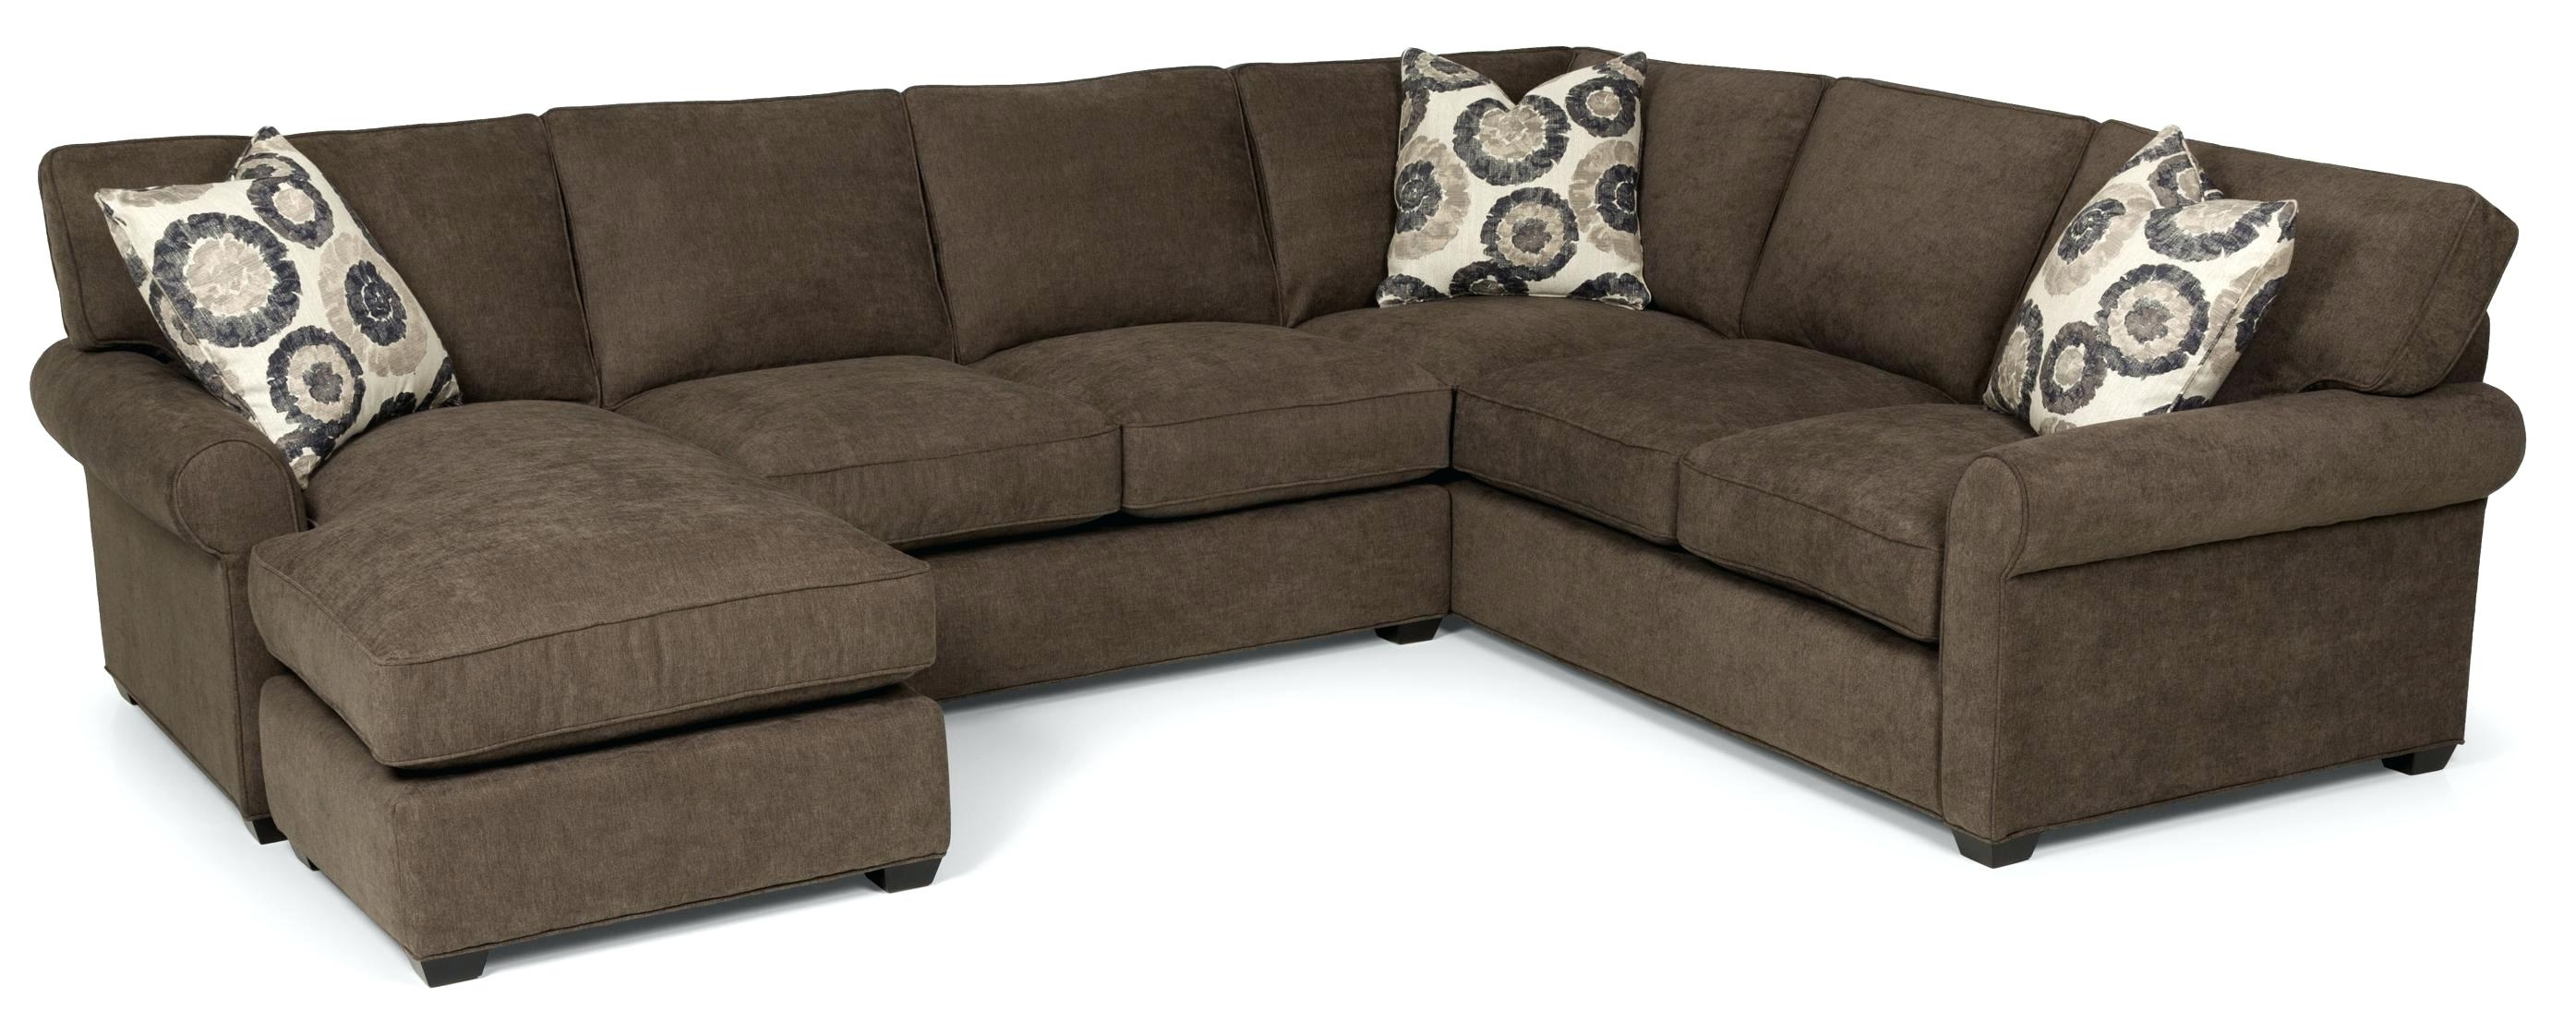 2 Piece Sectional Sofa With Chaise 2 Piece Sectional With Chaise throughout Jobs Oat 2 Piece Sectionals With Left Facing Chaise (Image 1 of 30)